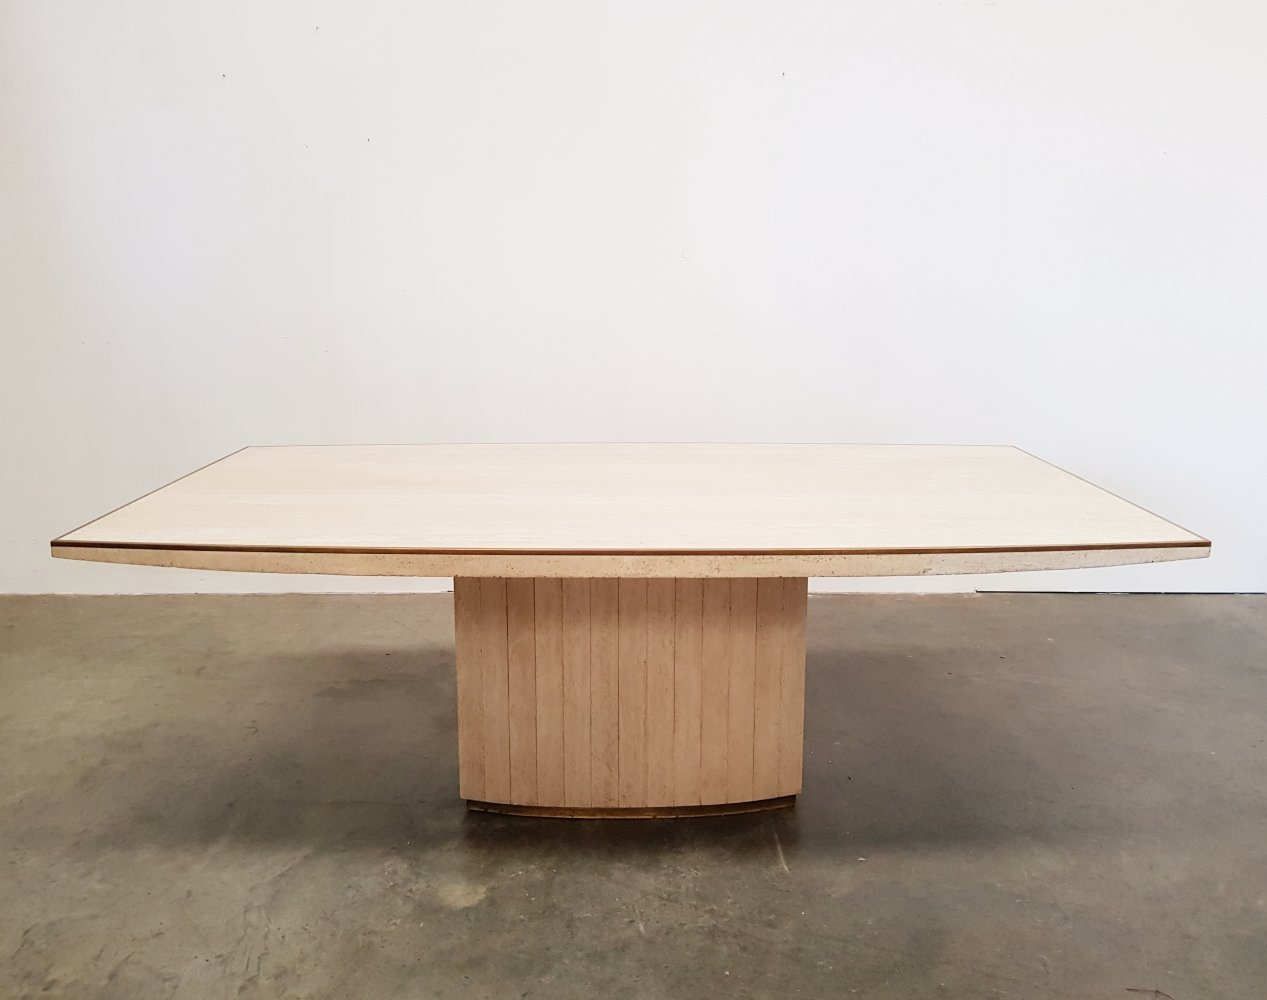 Travertine dining table from Willy Rizzo with brass details, 1970s